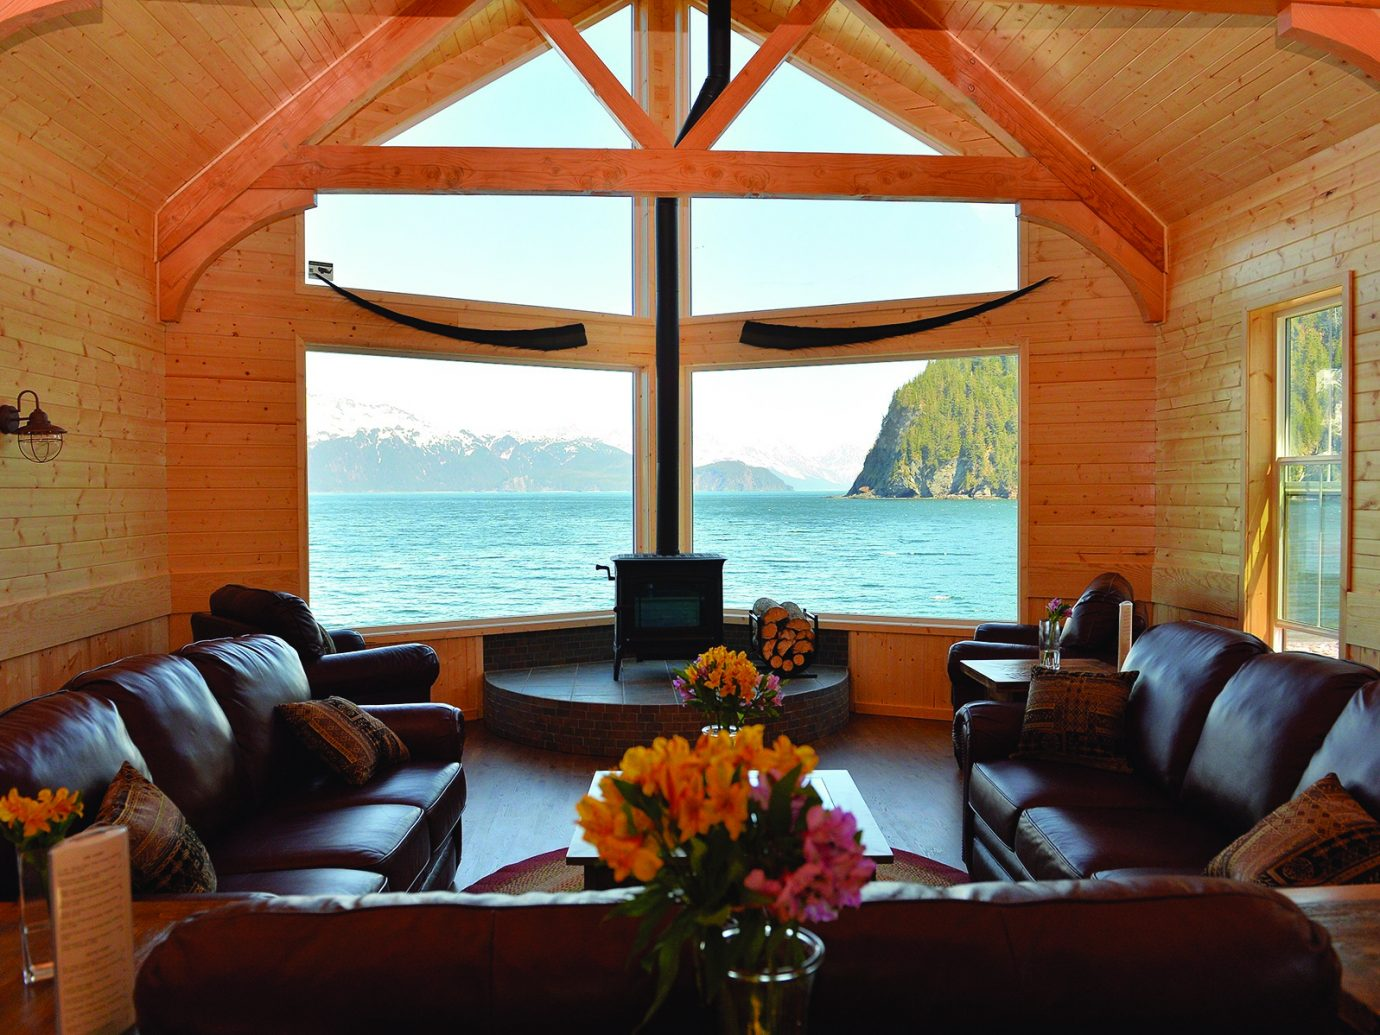 Living room at Kenai Fjords Wilderness Lodge, Alaska